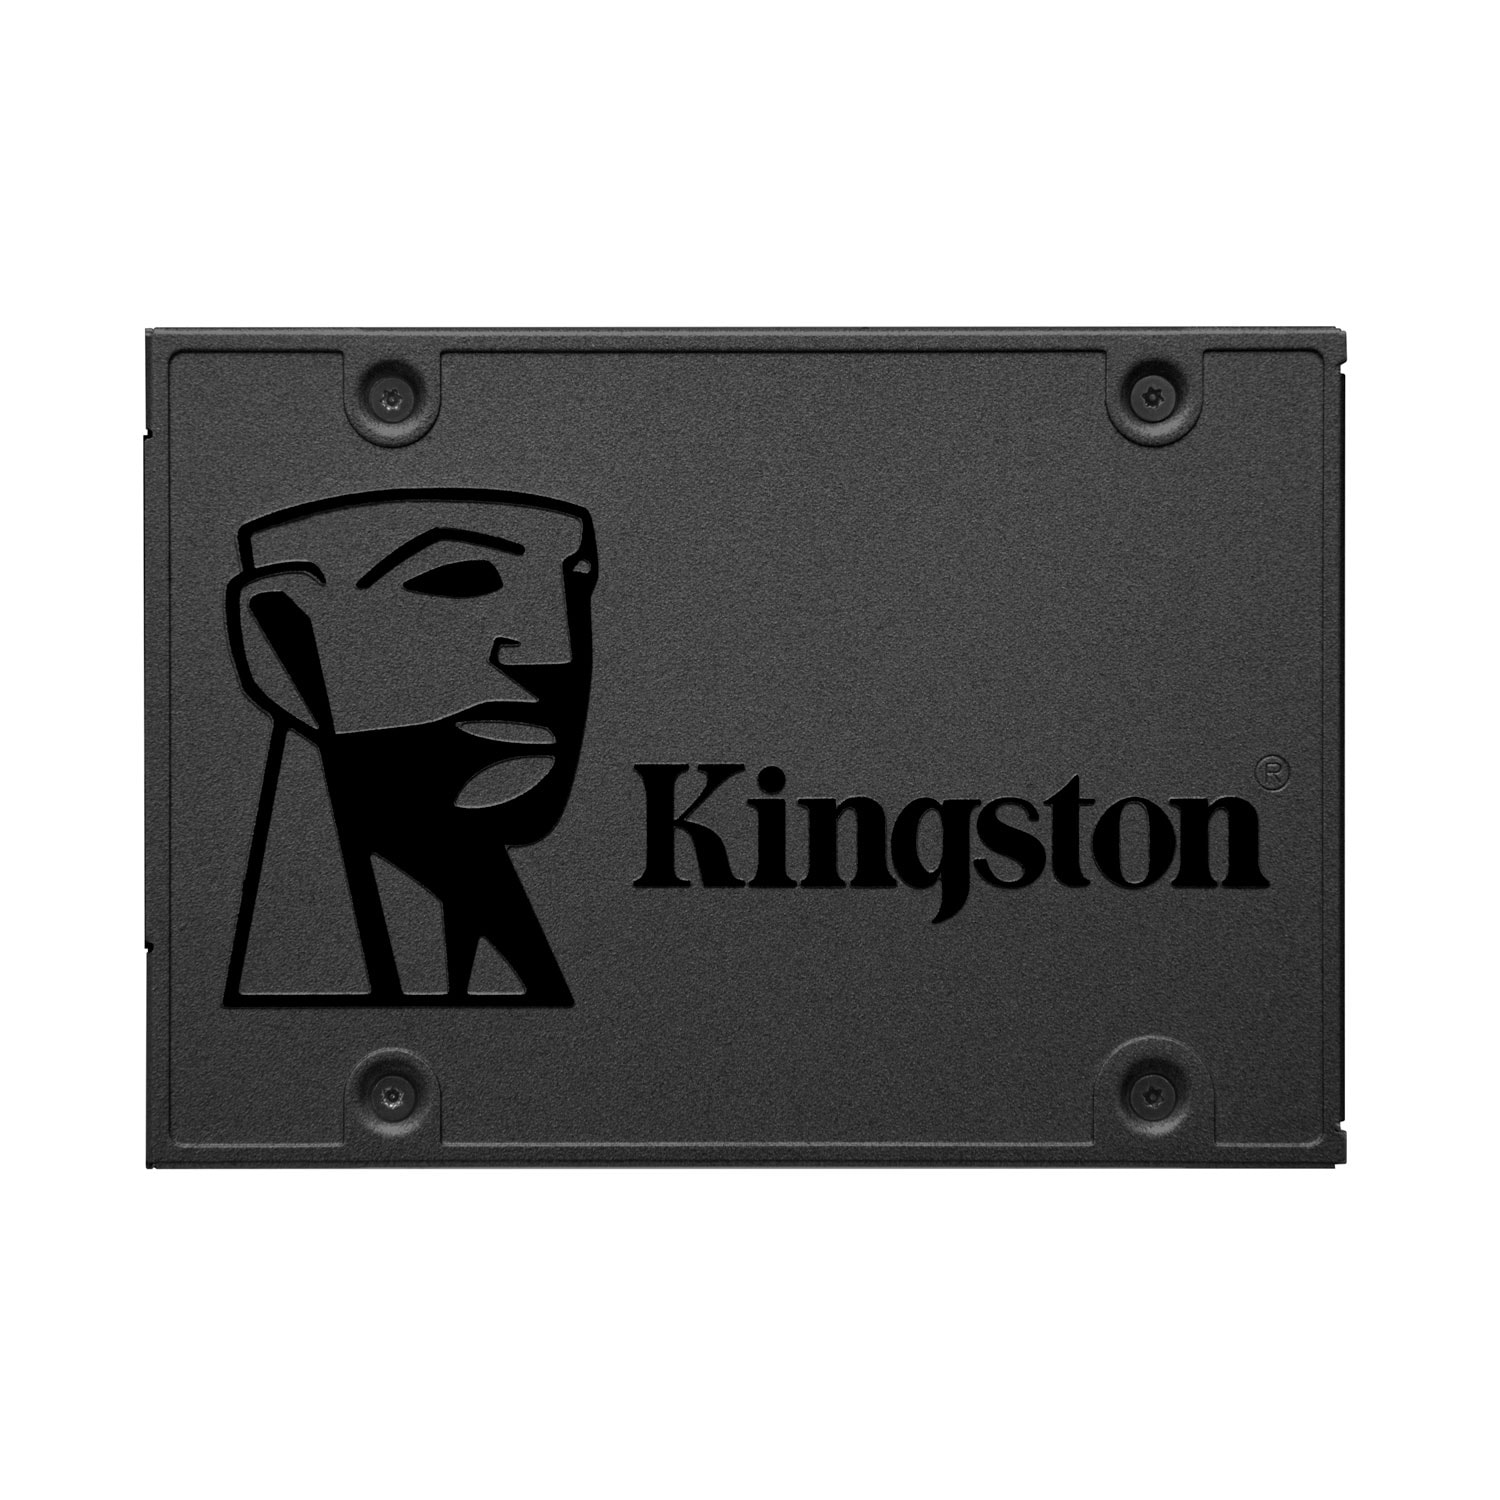 Kingston A400 120-128Go - Disque SSD Kingston - Cybertek.fr - 2